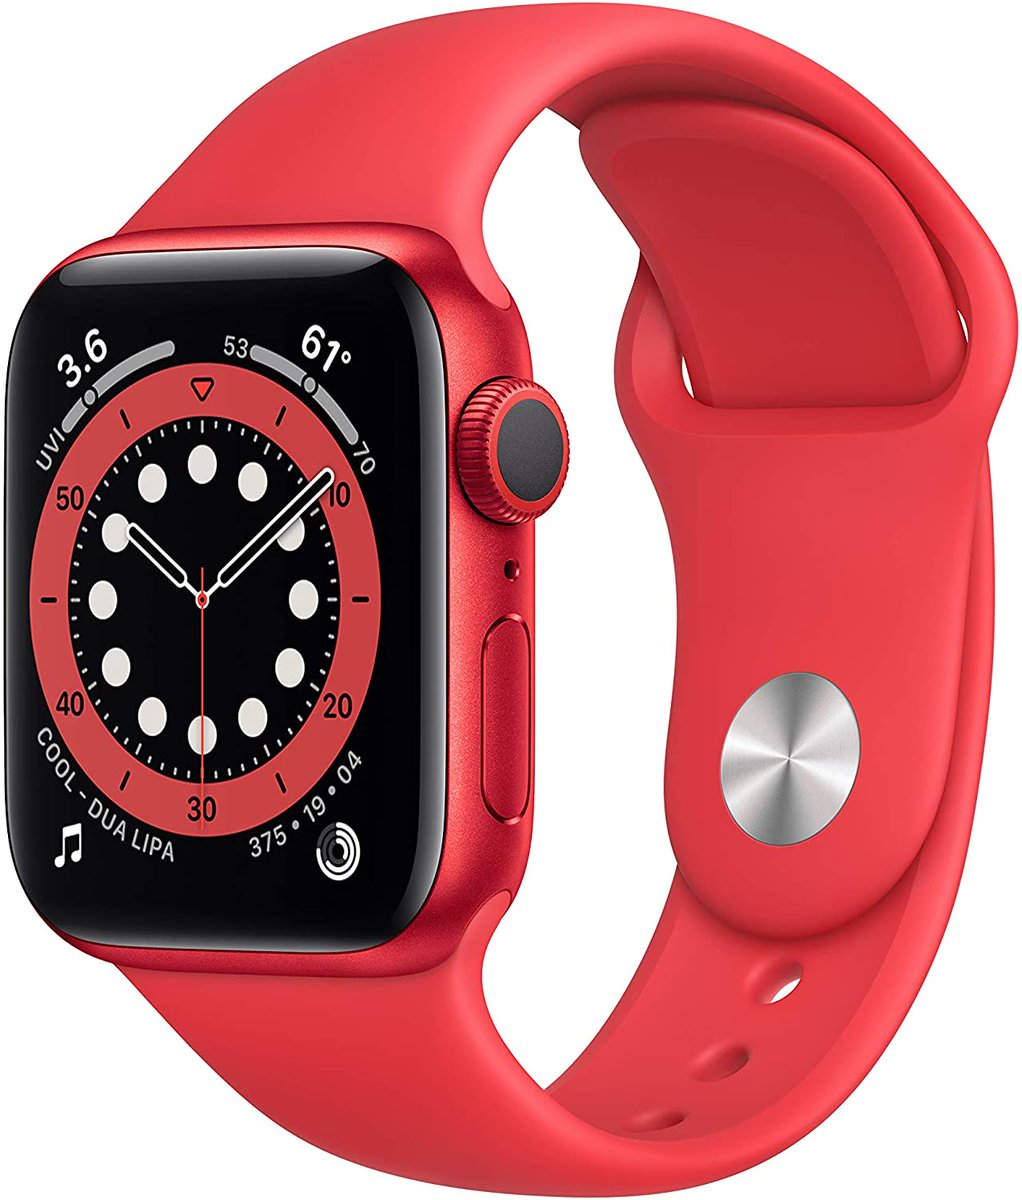 STEAL!  Get a NEW Apple Watch for as low as $169!!  38mm; https://t.co/X4RuU1ZUQa 42mm for $199; https://t.co/RRwkYHiGVB  Series 6, 40mm, $339; https://t.co/V0o1EdCQaS https://t.co/Au35Dfh2u2